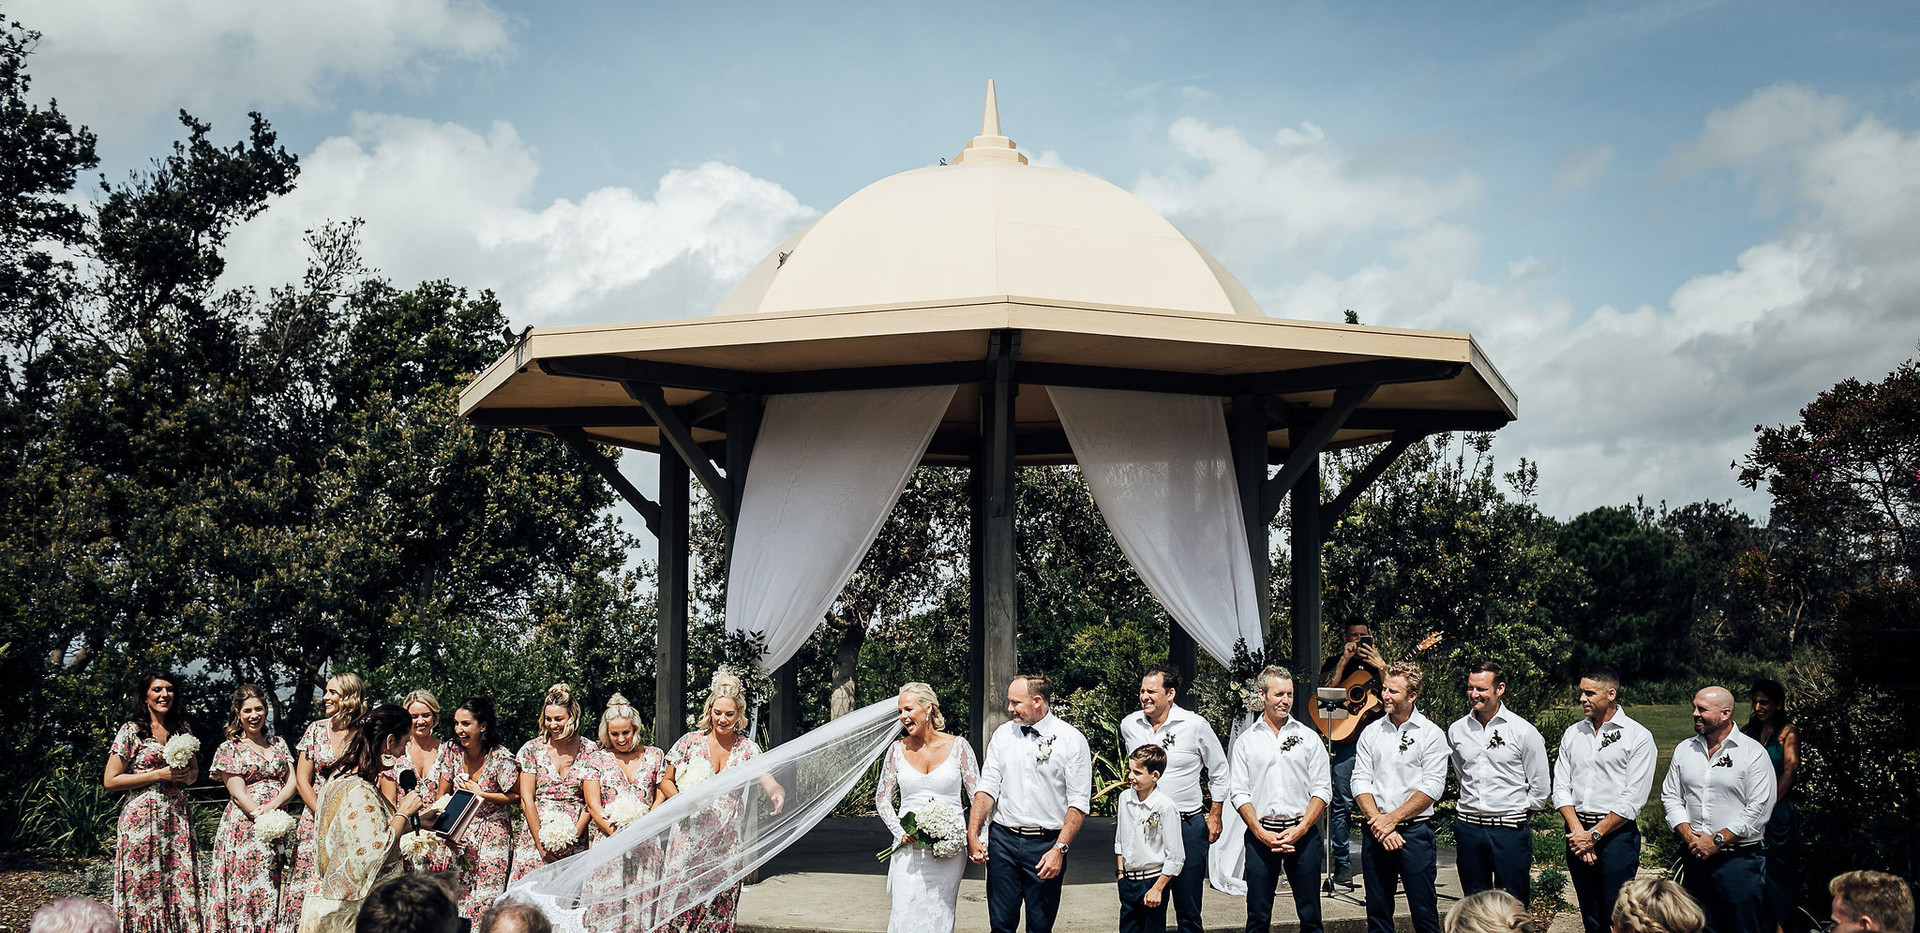 Cameron + Bree say I Do at Coogee Beach